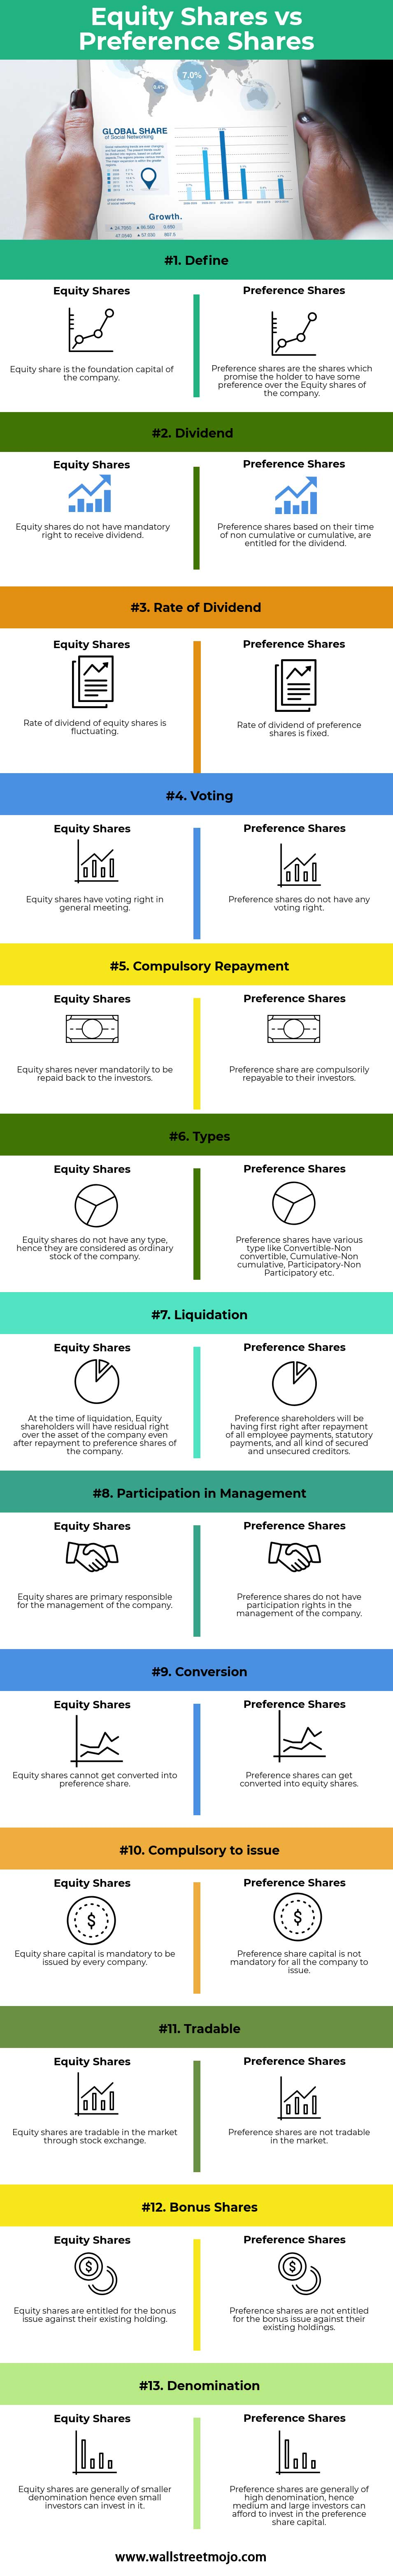 Equity-Shares-vs-Preference-Shares-info